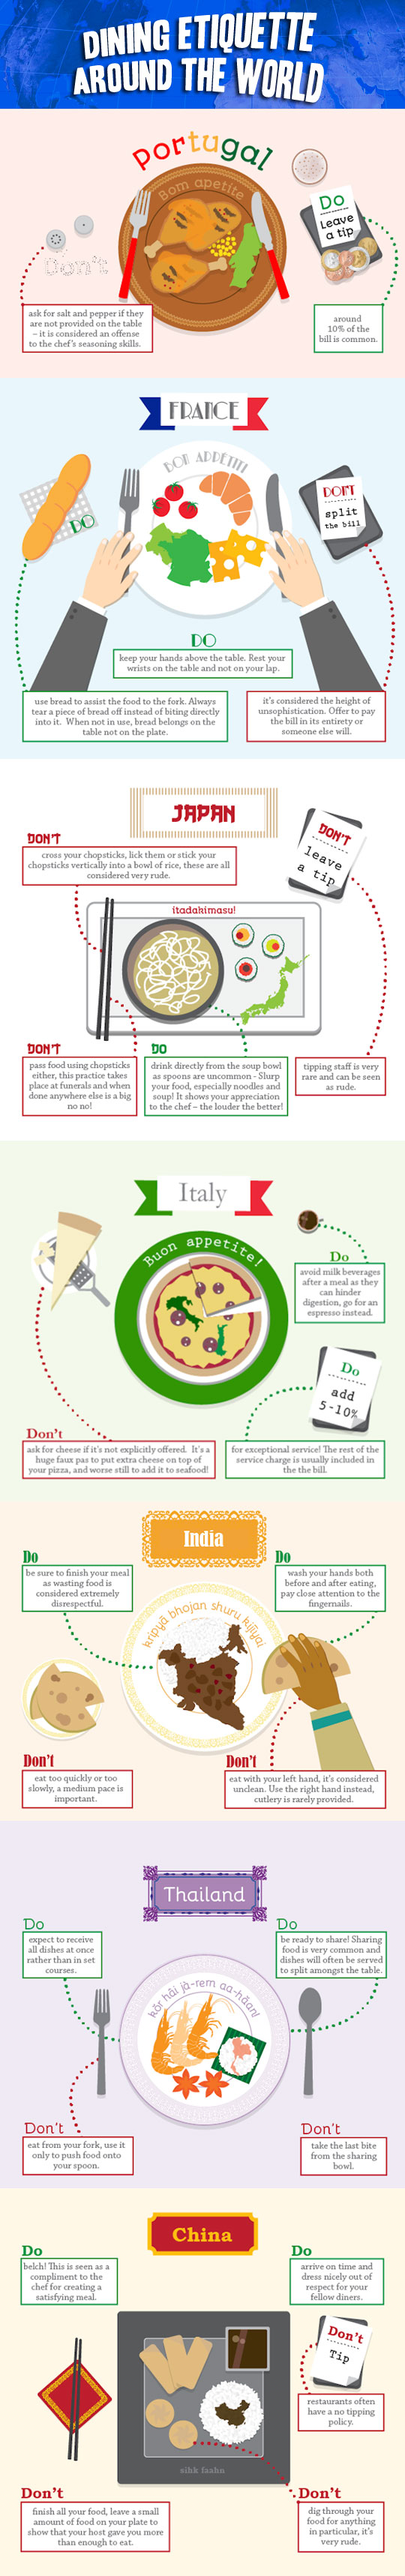 cool-dining-etiquette-around-world-plate